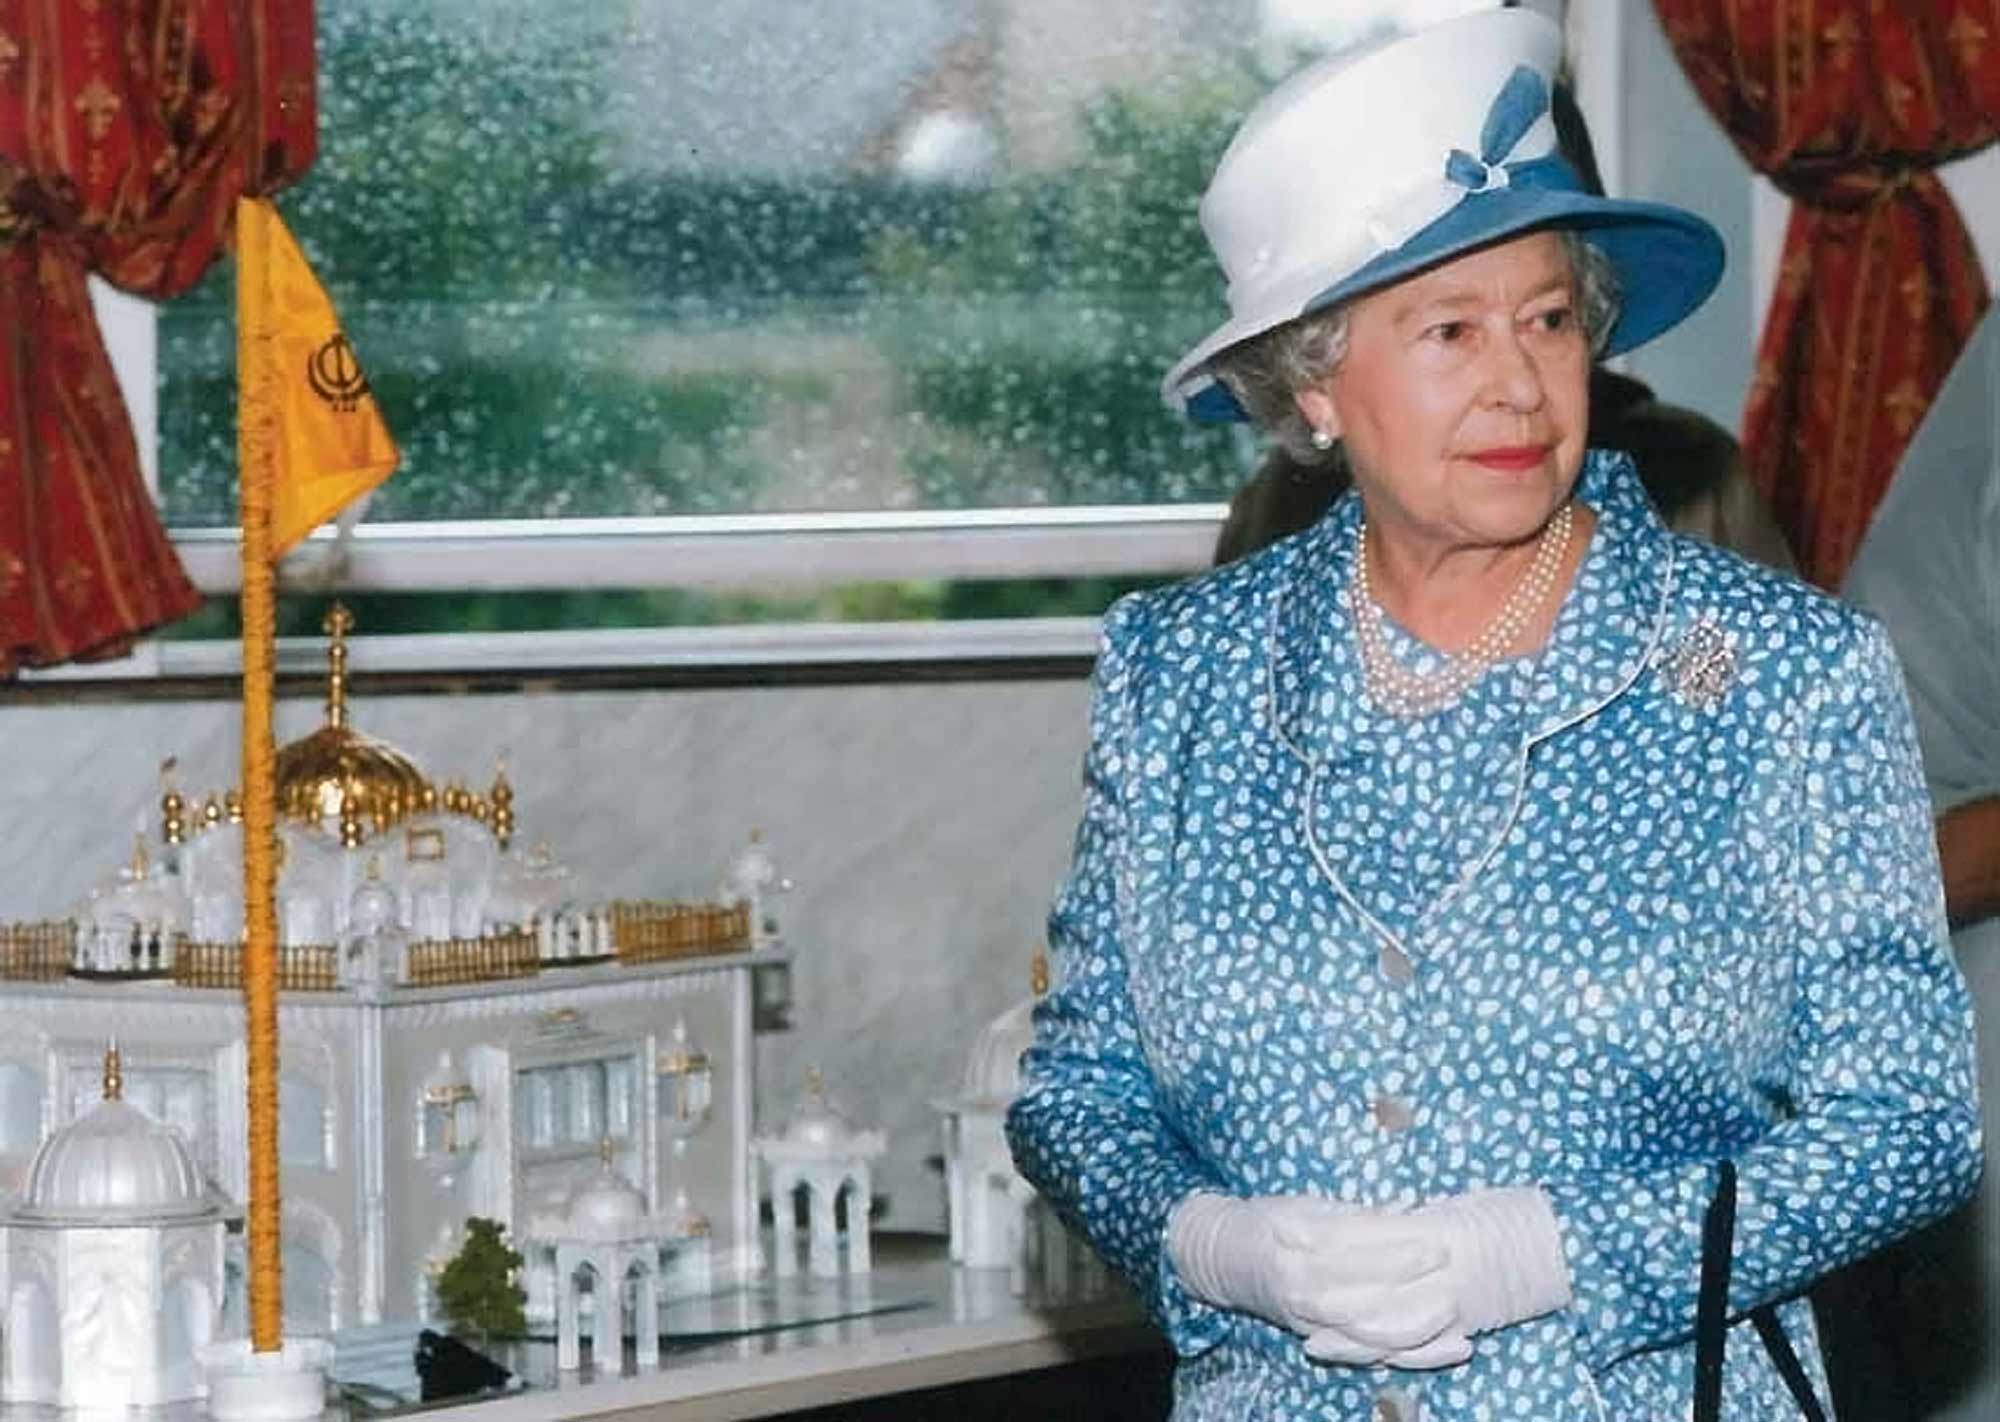 The Queen visited the Gurdwara in 2002 - Gurdwara picture archive